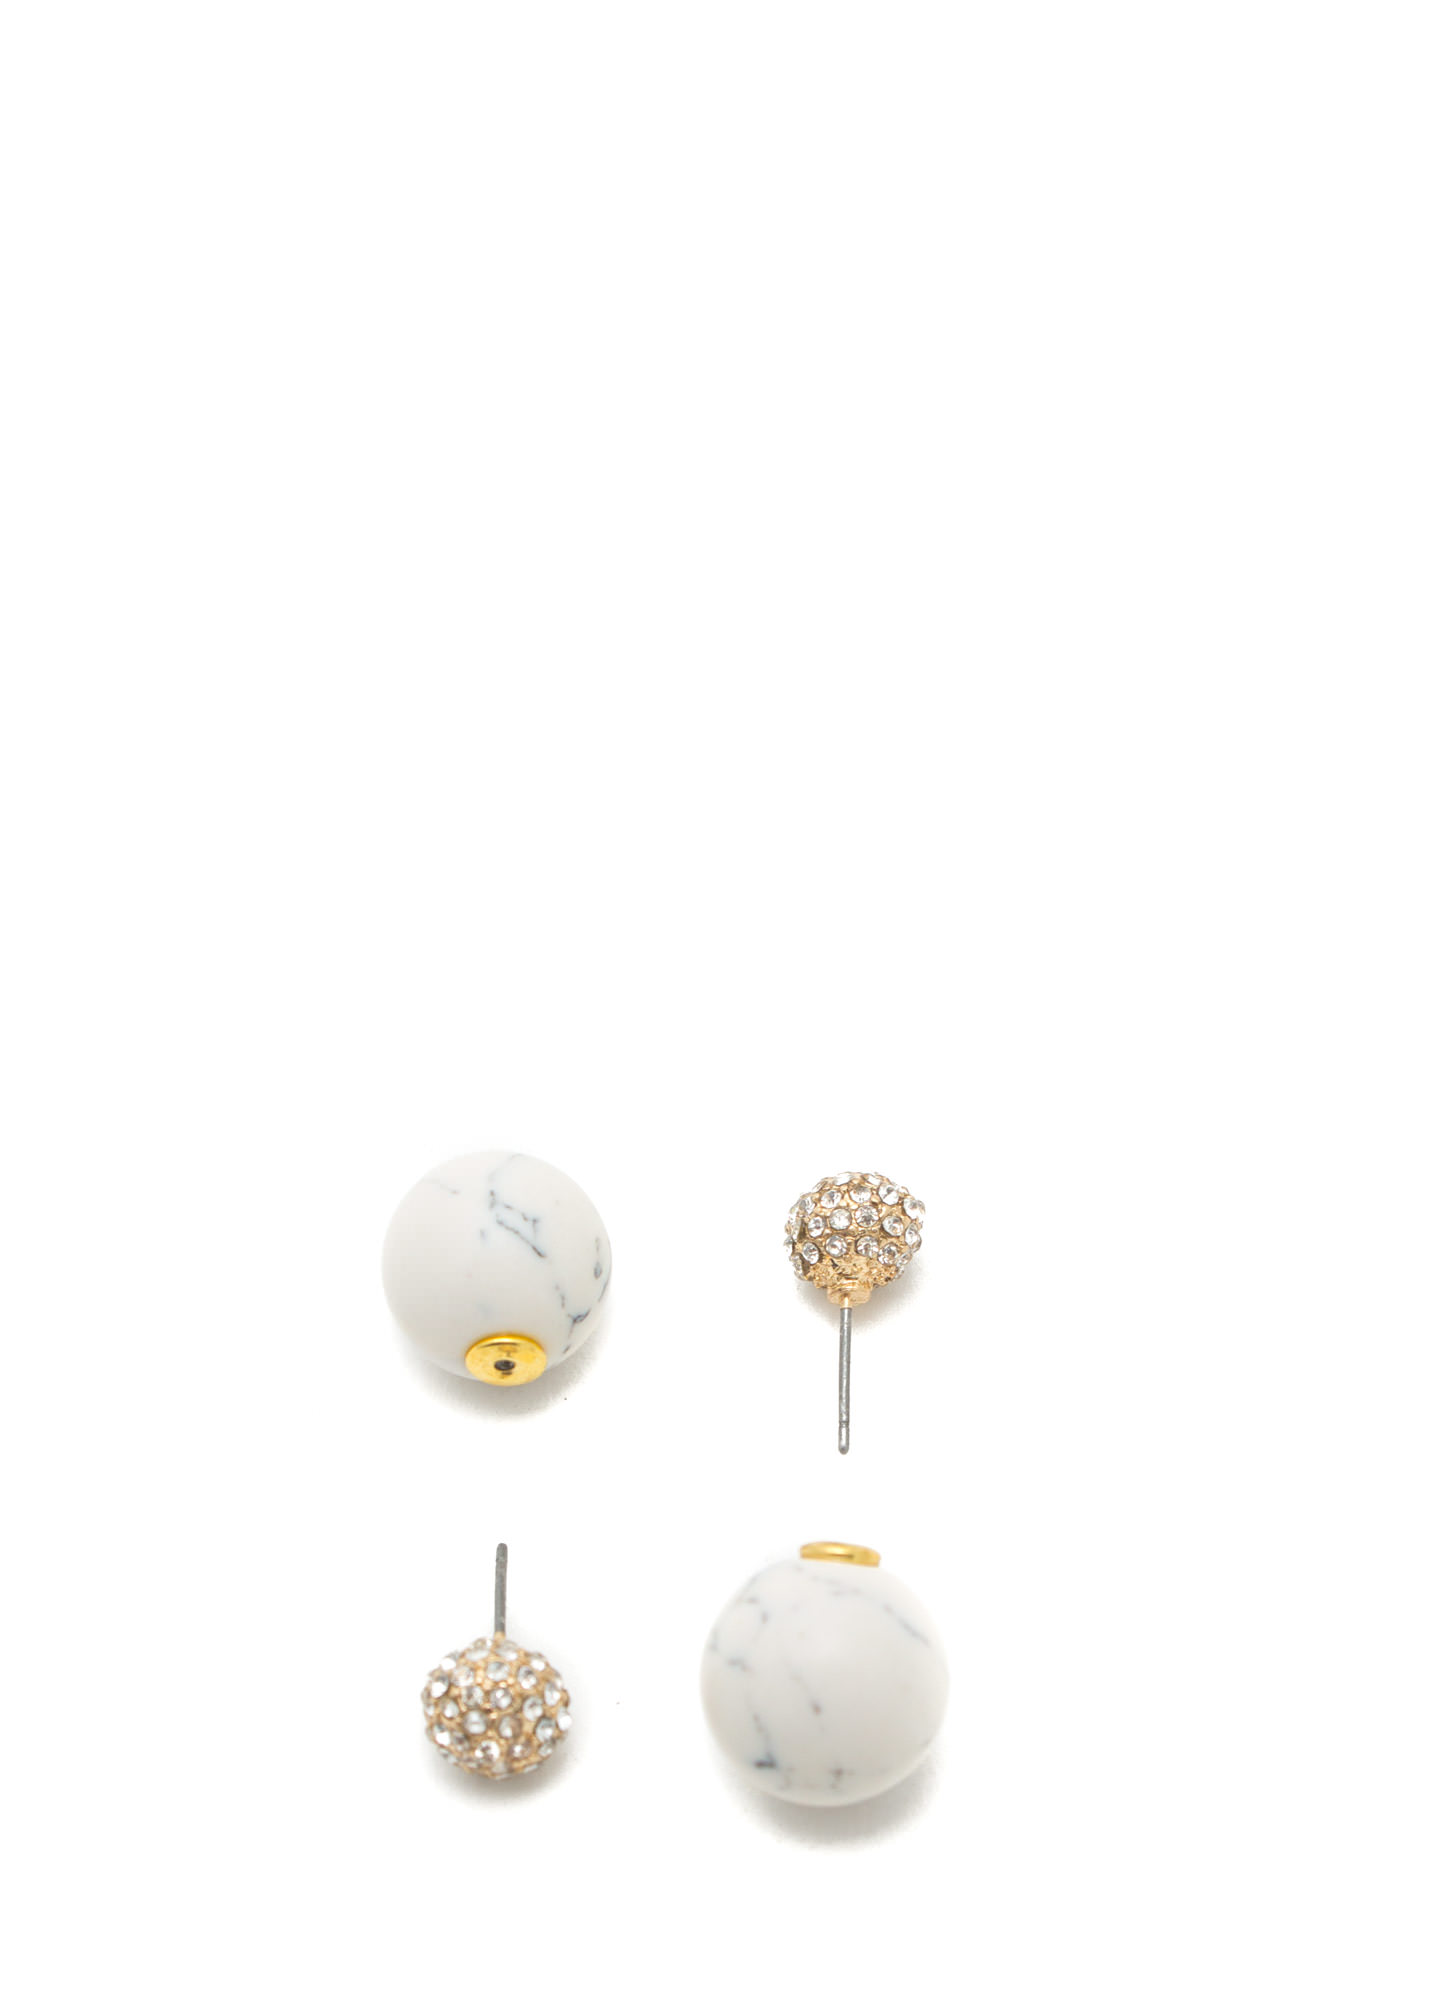 Double-Sided Stone Backdrop Earrings GOLDIVORY